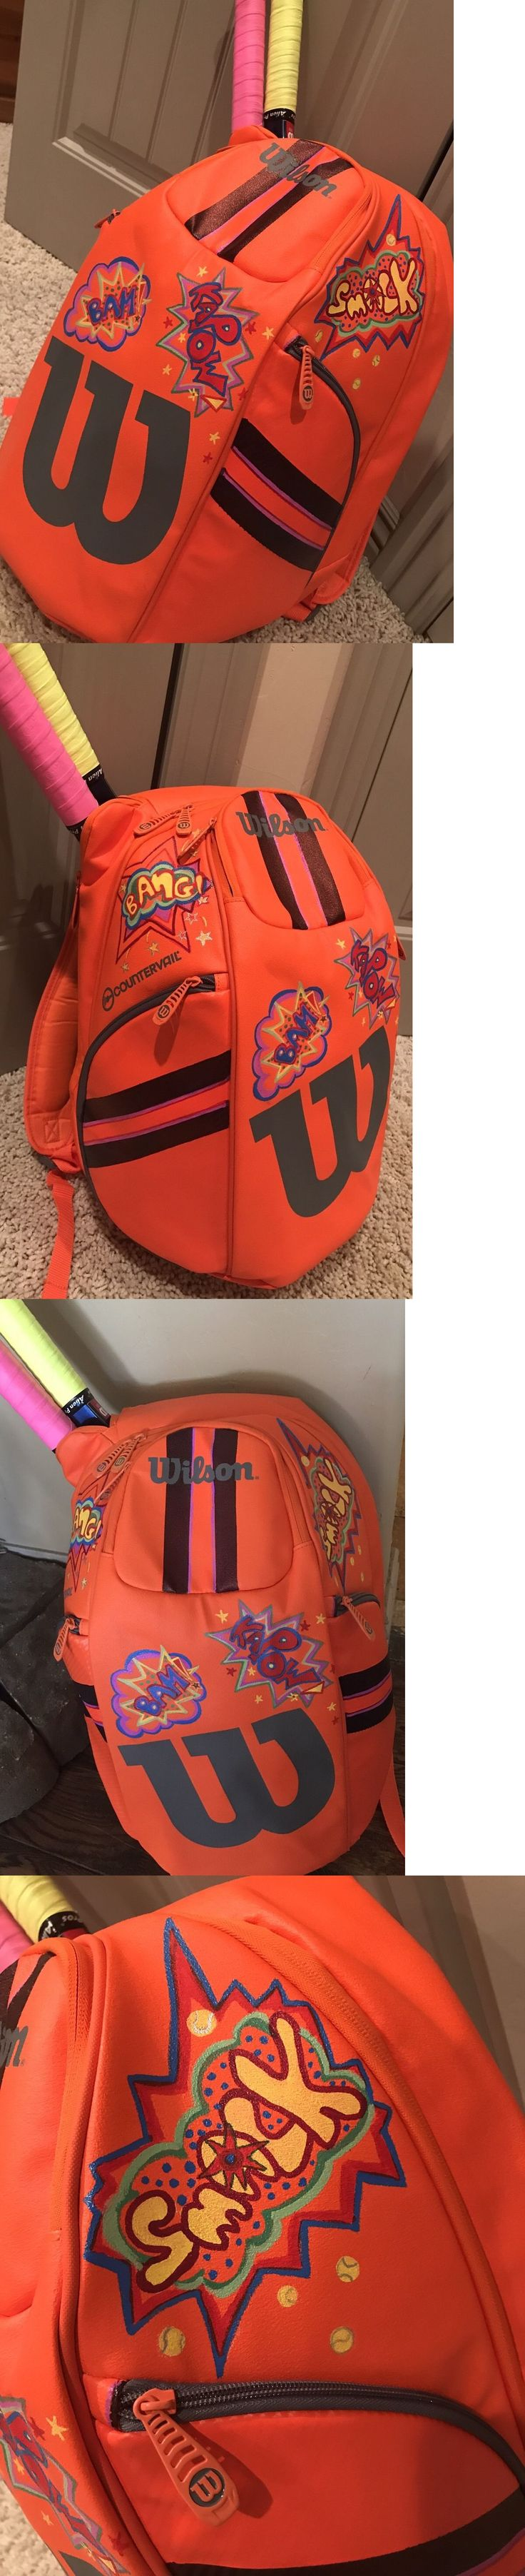 Bags 20869: Burn Wilson Tennis Bag Customized Cartoon Art Sports Backpack Neon Orange Nwt -> BUY IT NOW ONLY: $150 on eBay!